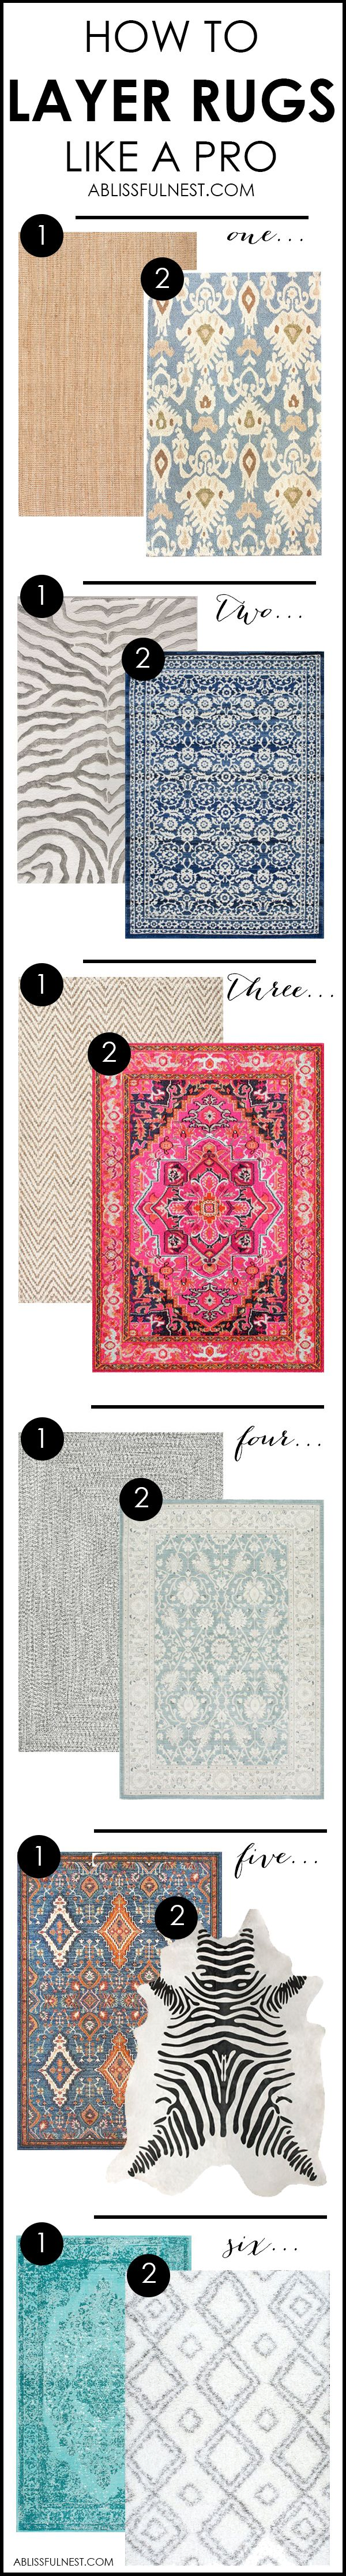 It's time for a change! Show some designer flare and learn how to layer rugs like a pro. The designers all do it for a reason. It makes BIG impact.…